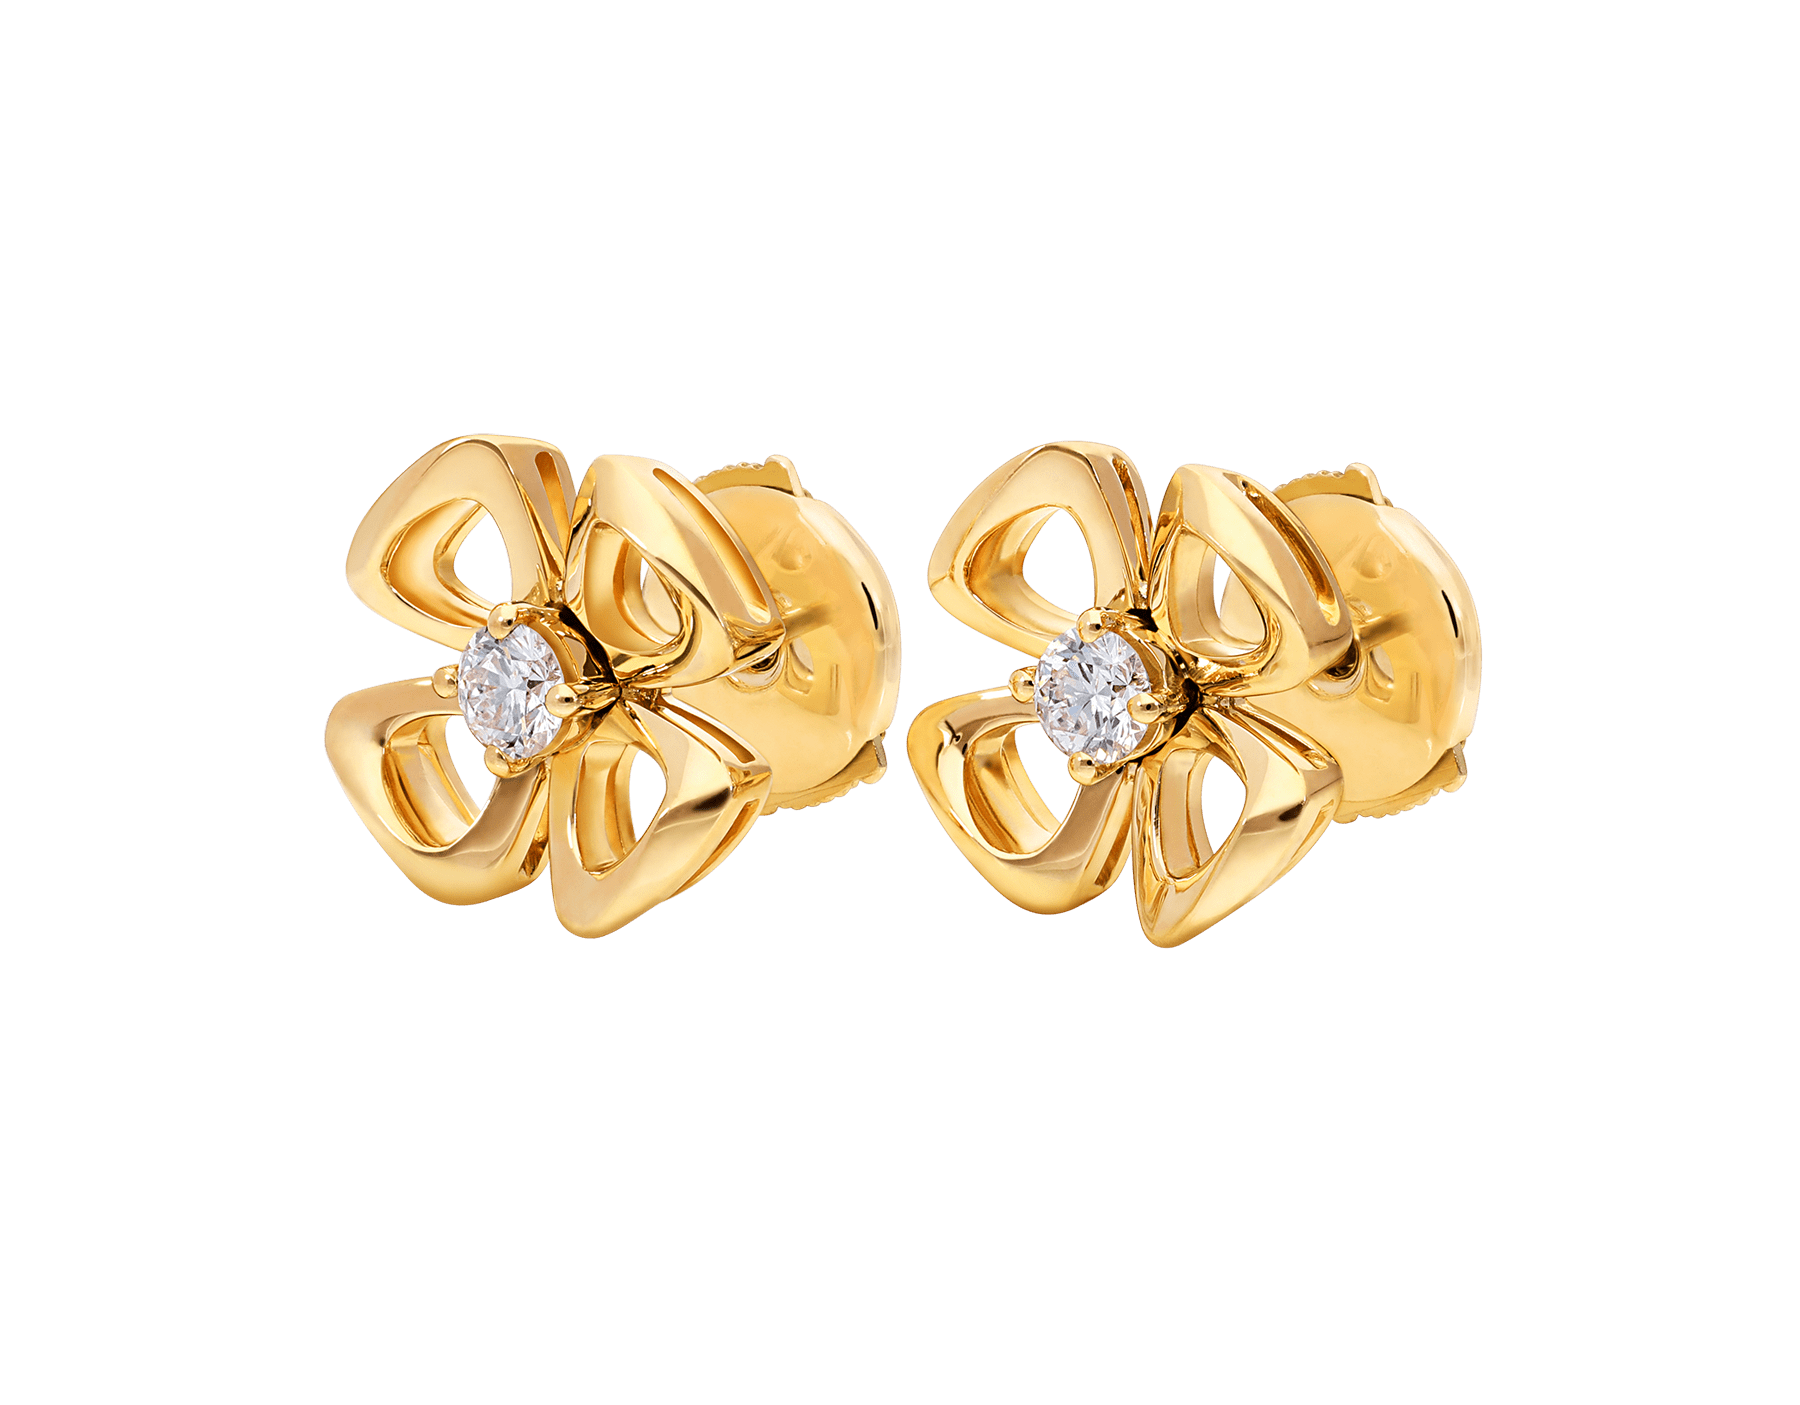 Fiorever 18 kt yellow gold stud earrings set with two central diamonds (0.10 ct each) 357503 image 2